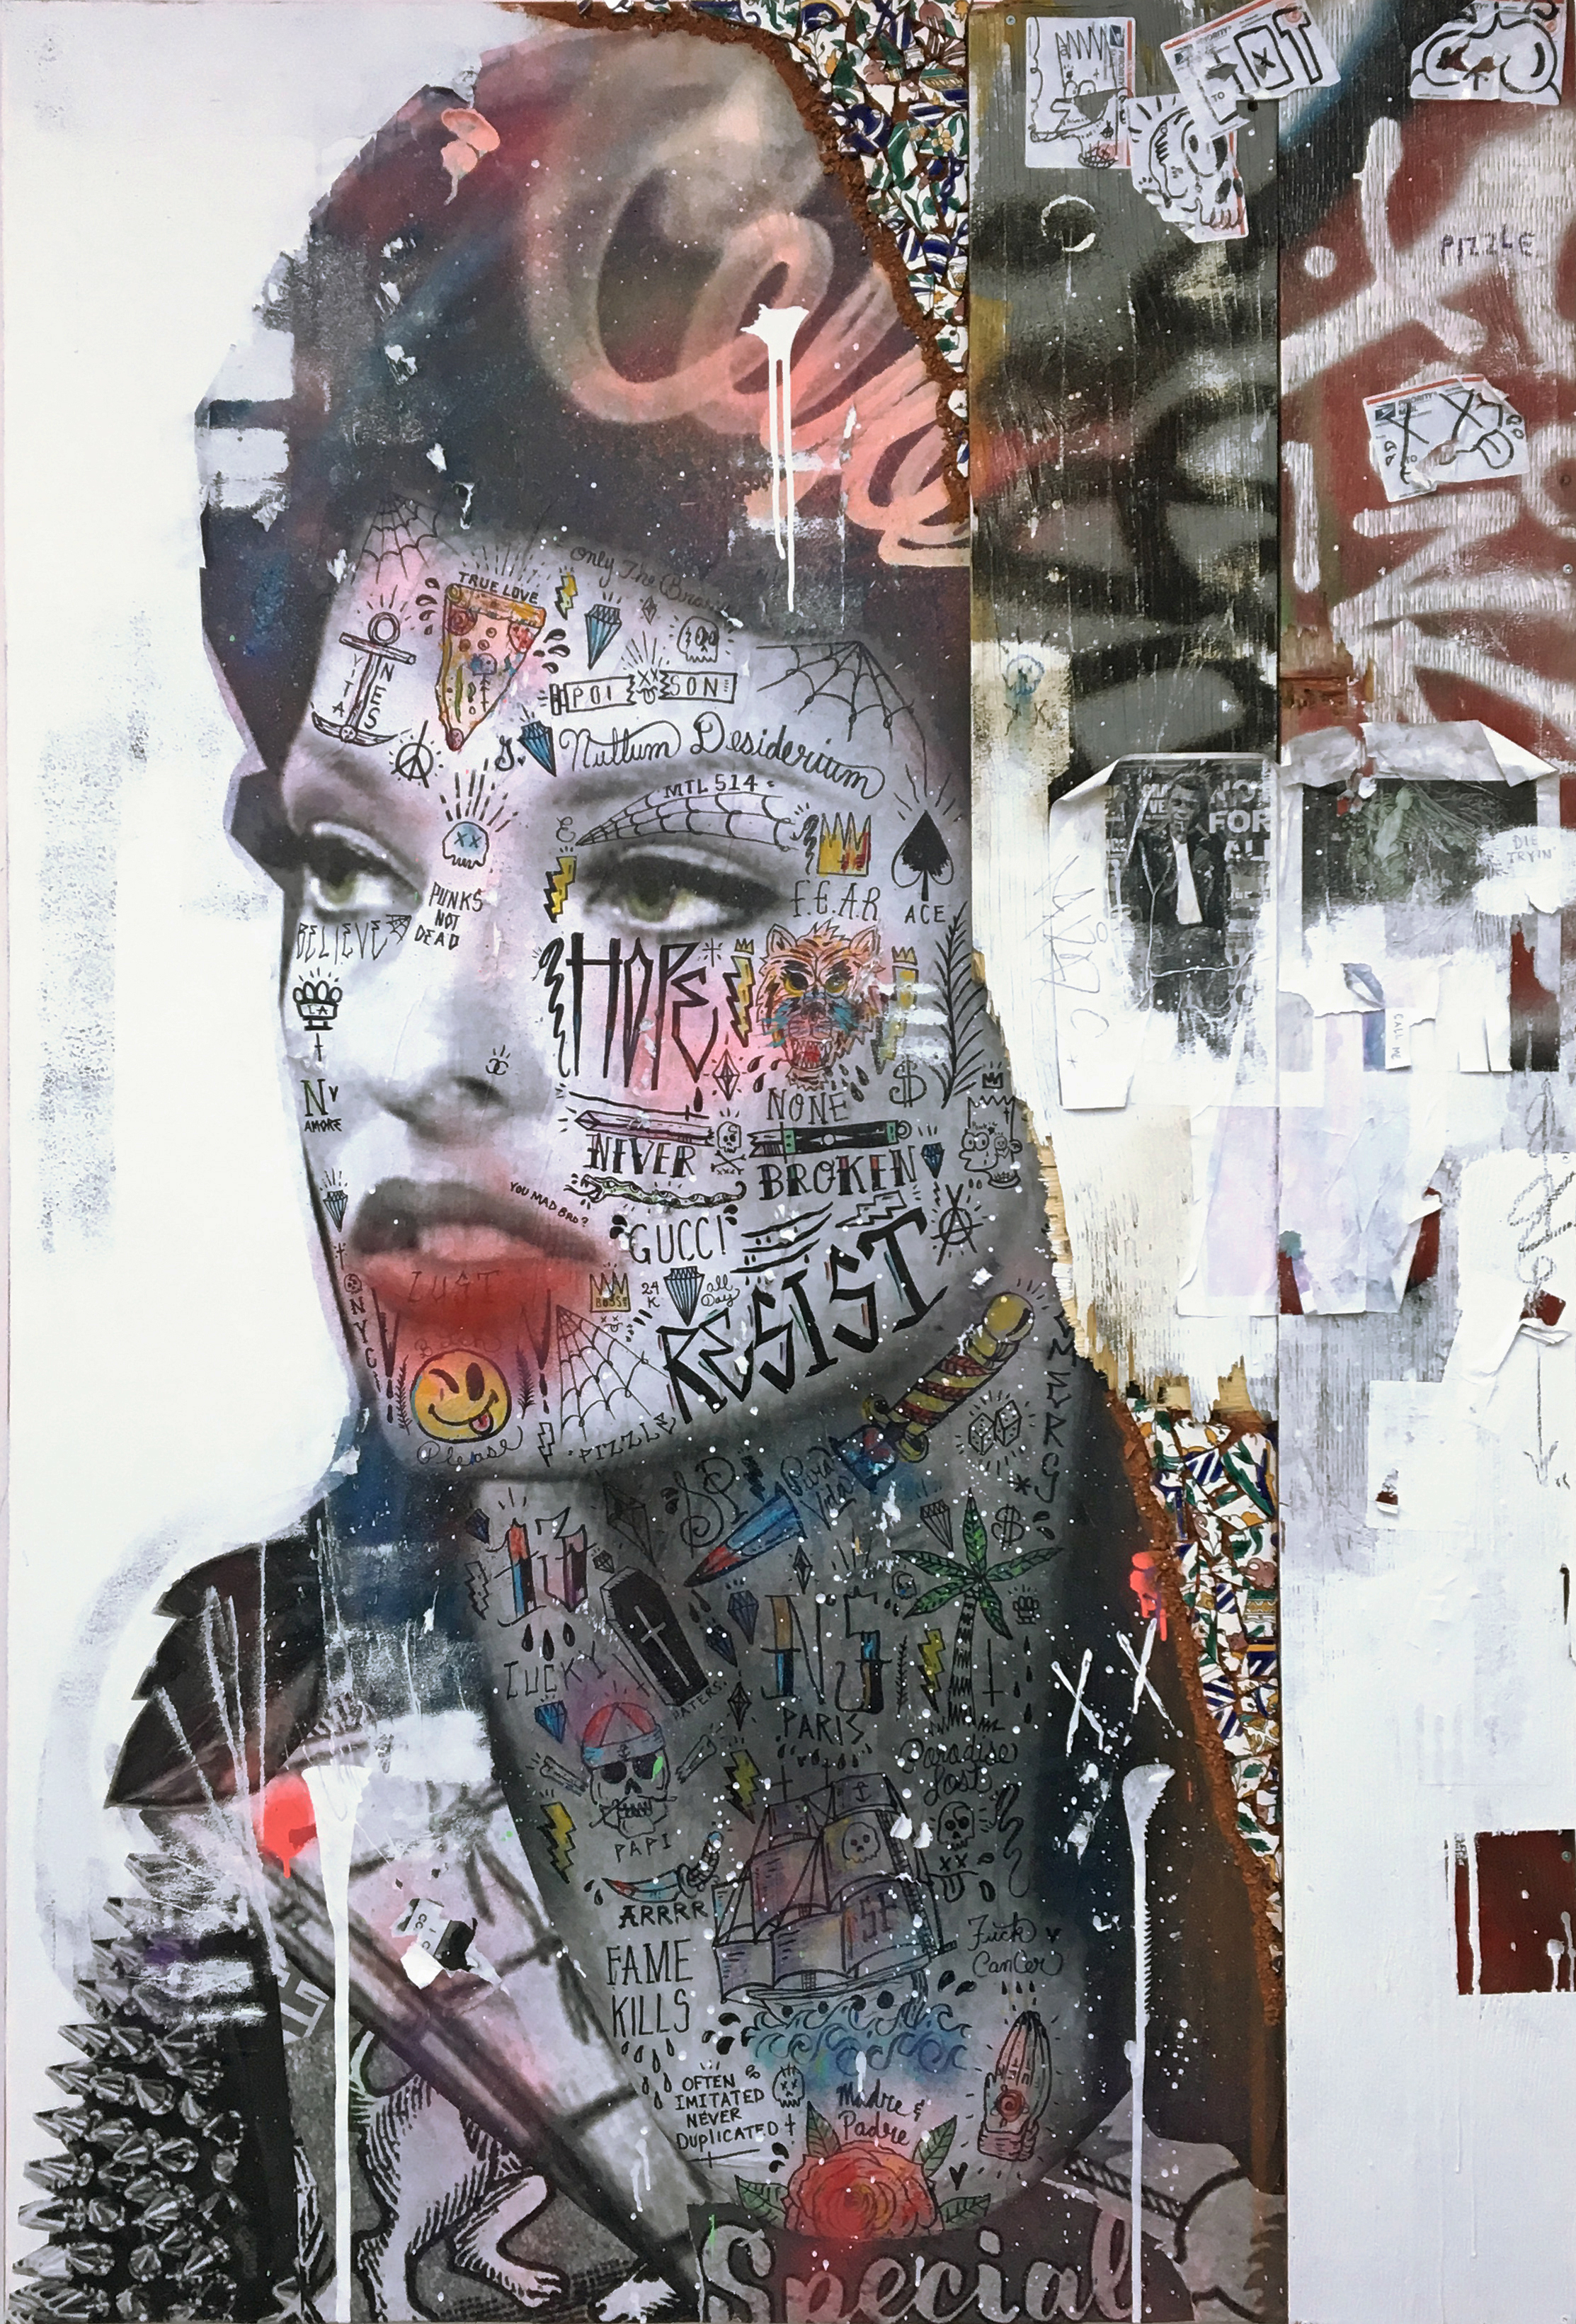 - STIKKI PEACHES | CALL ME (LINDA EVANGELISTA)Mixed media on canvas with reclaimed wood & Tunisian hand painted tiles183 x 122 cm | 72 x 48 in2018